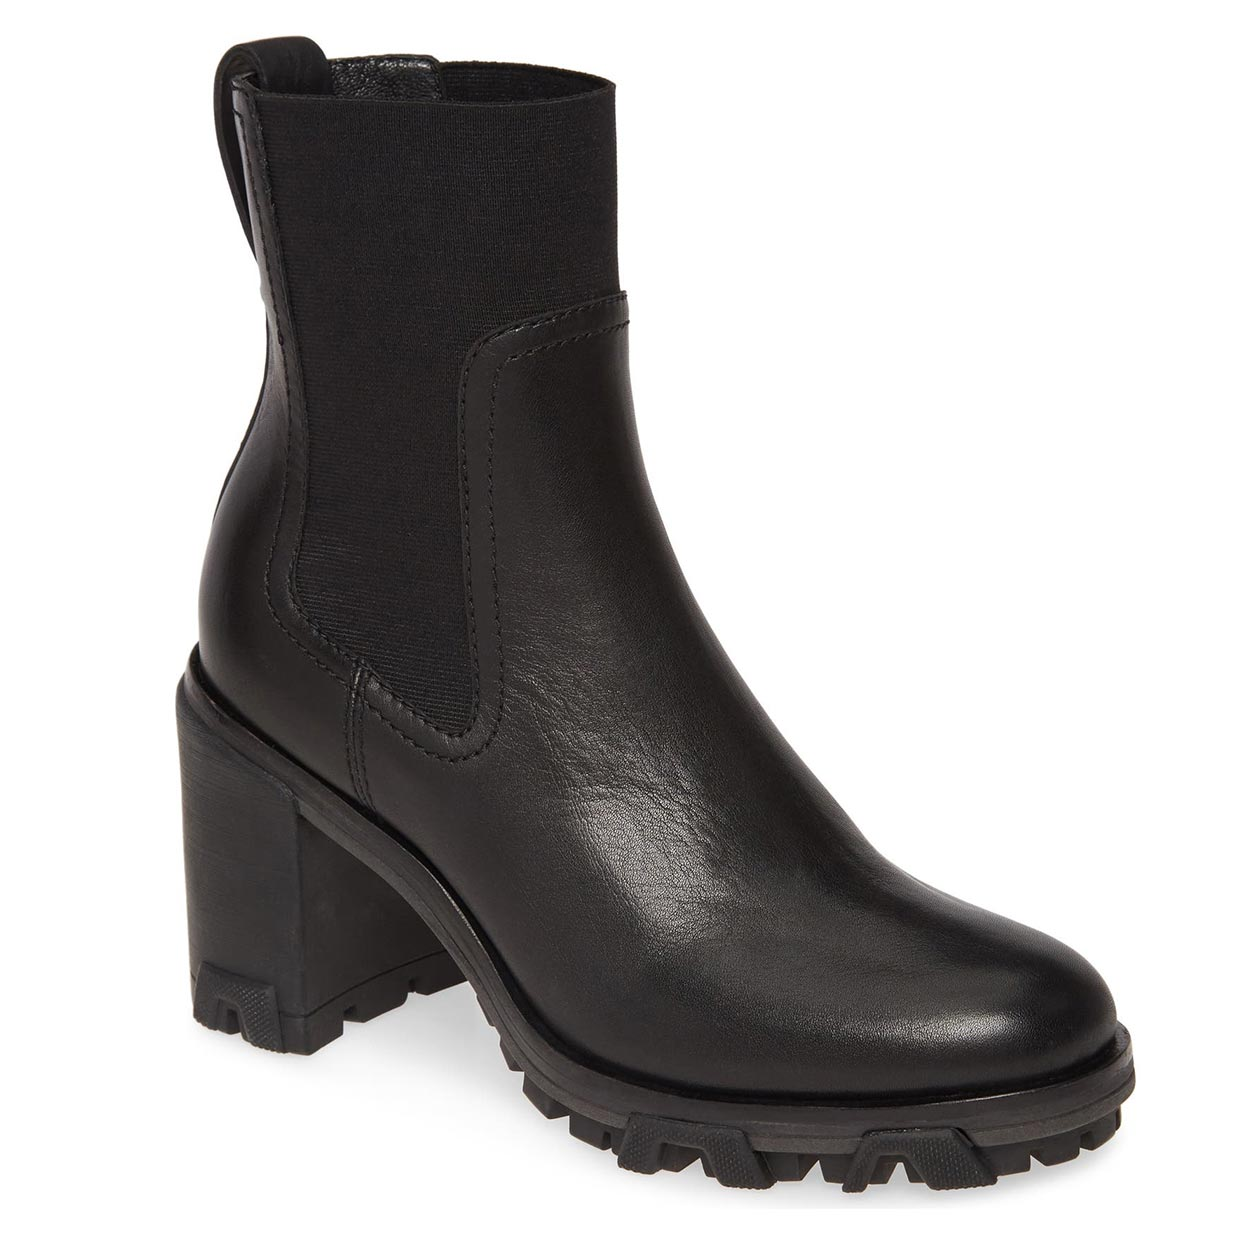 RAG & BONE Boots at Nordstrom